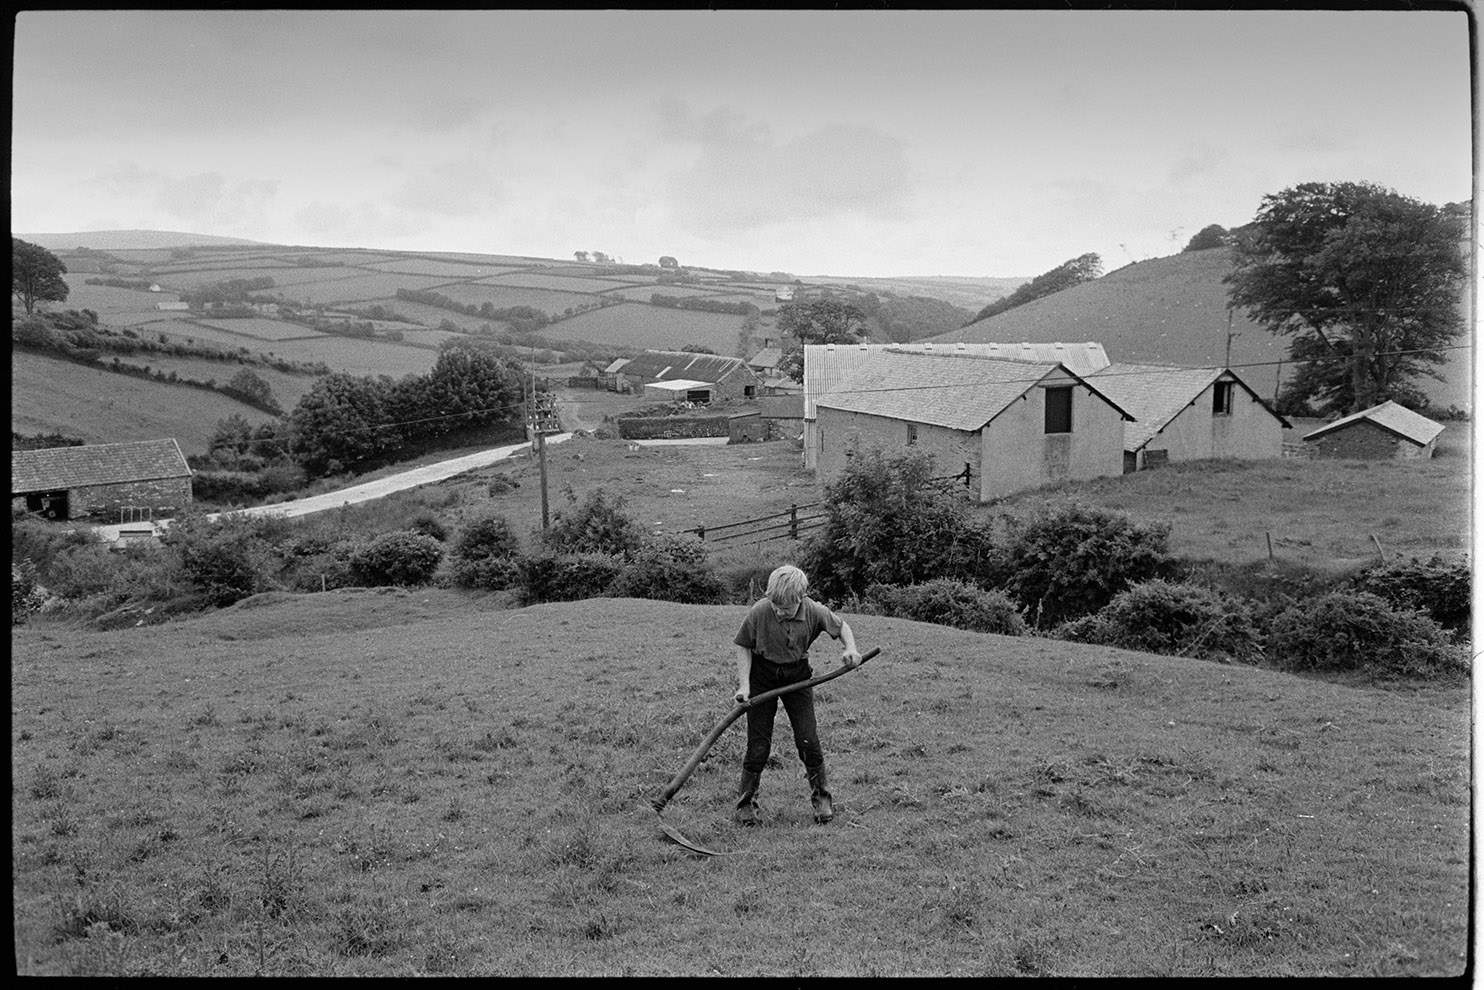 Boy scything, Bratton Fleming, July 1974. Documentary photograph by James Ravilious for the Beaford Archive © Beaford Arts